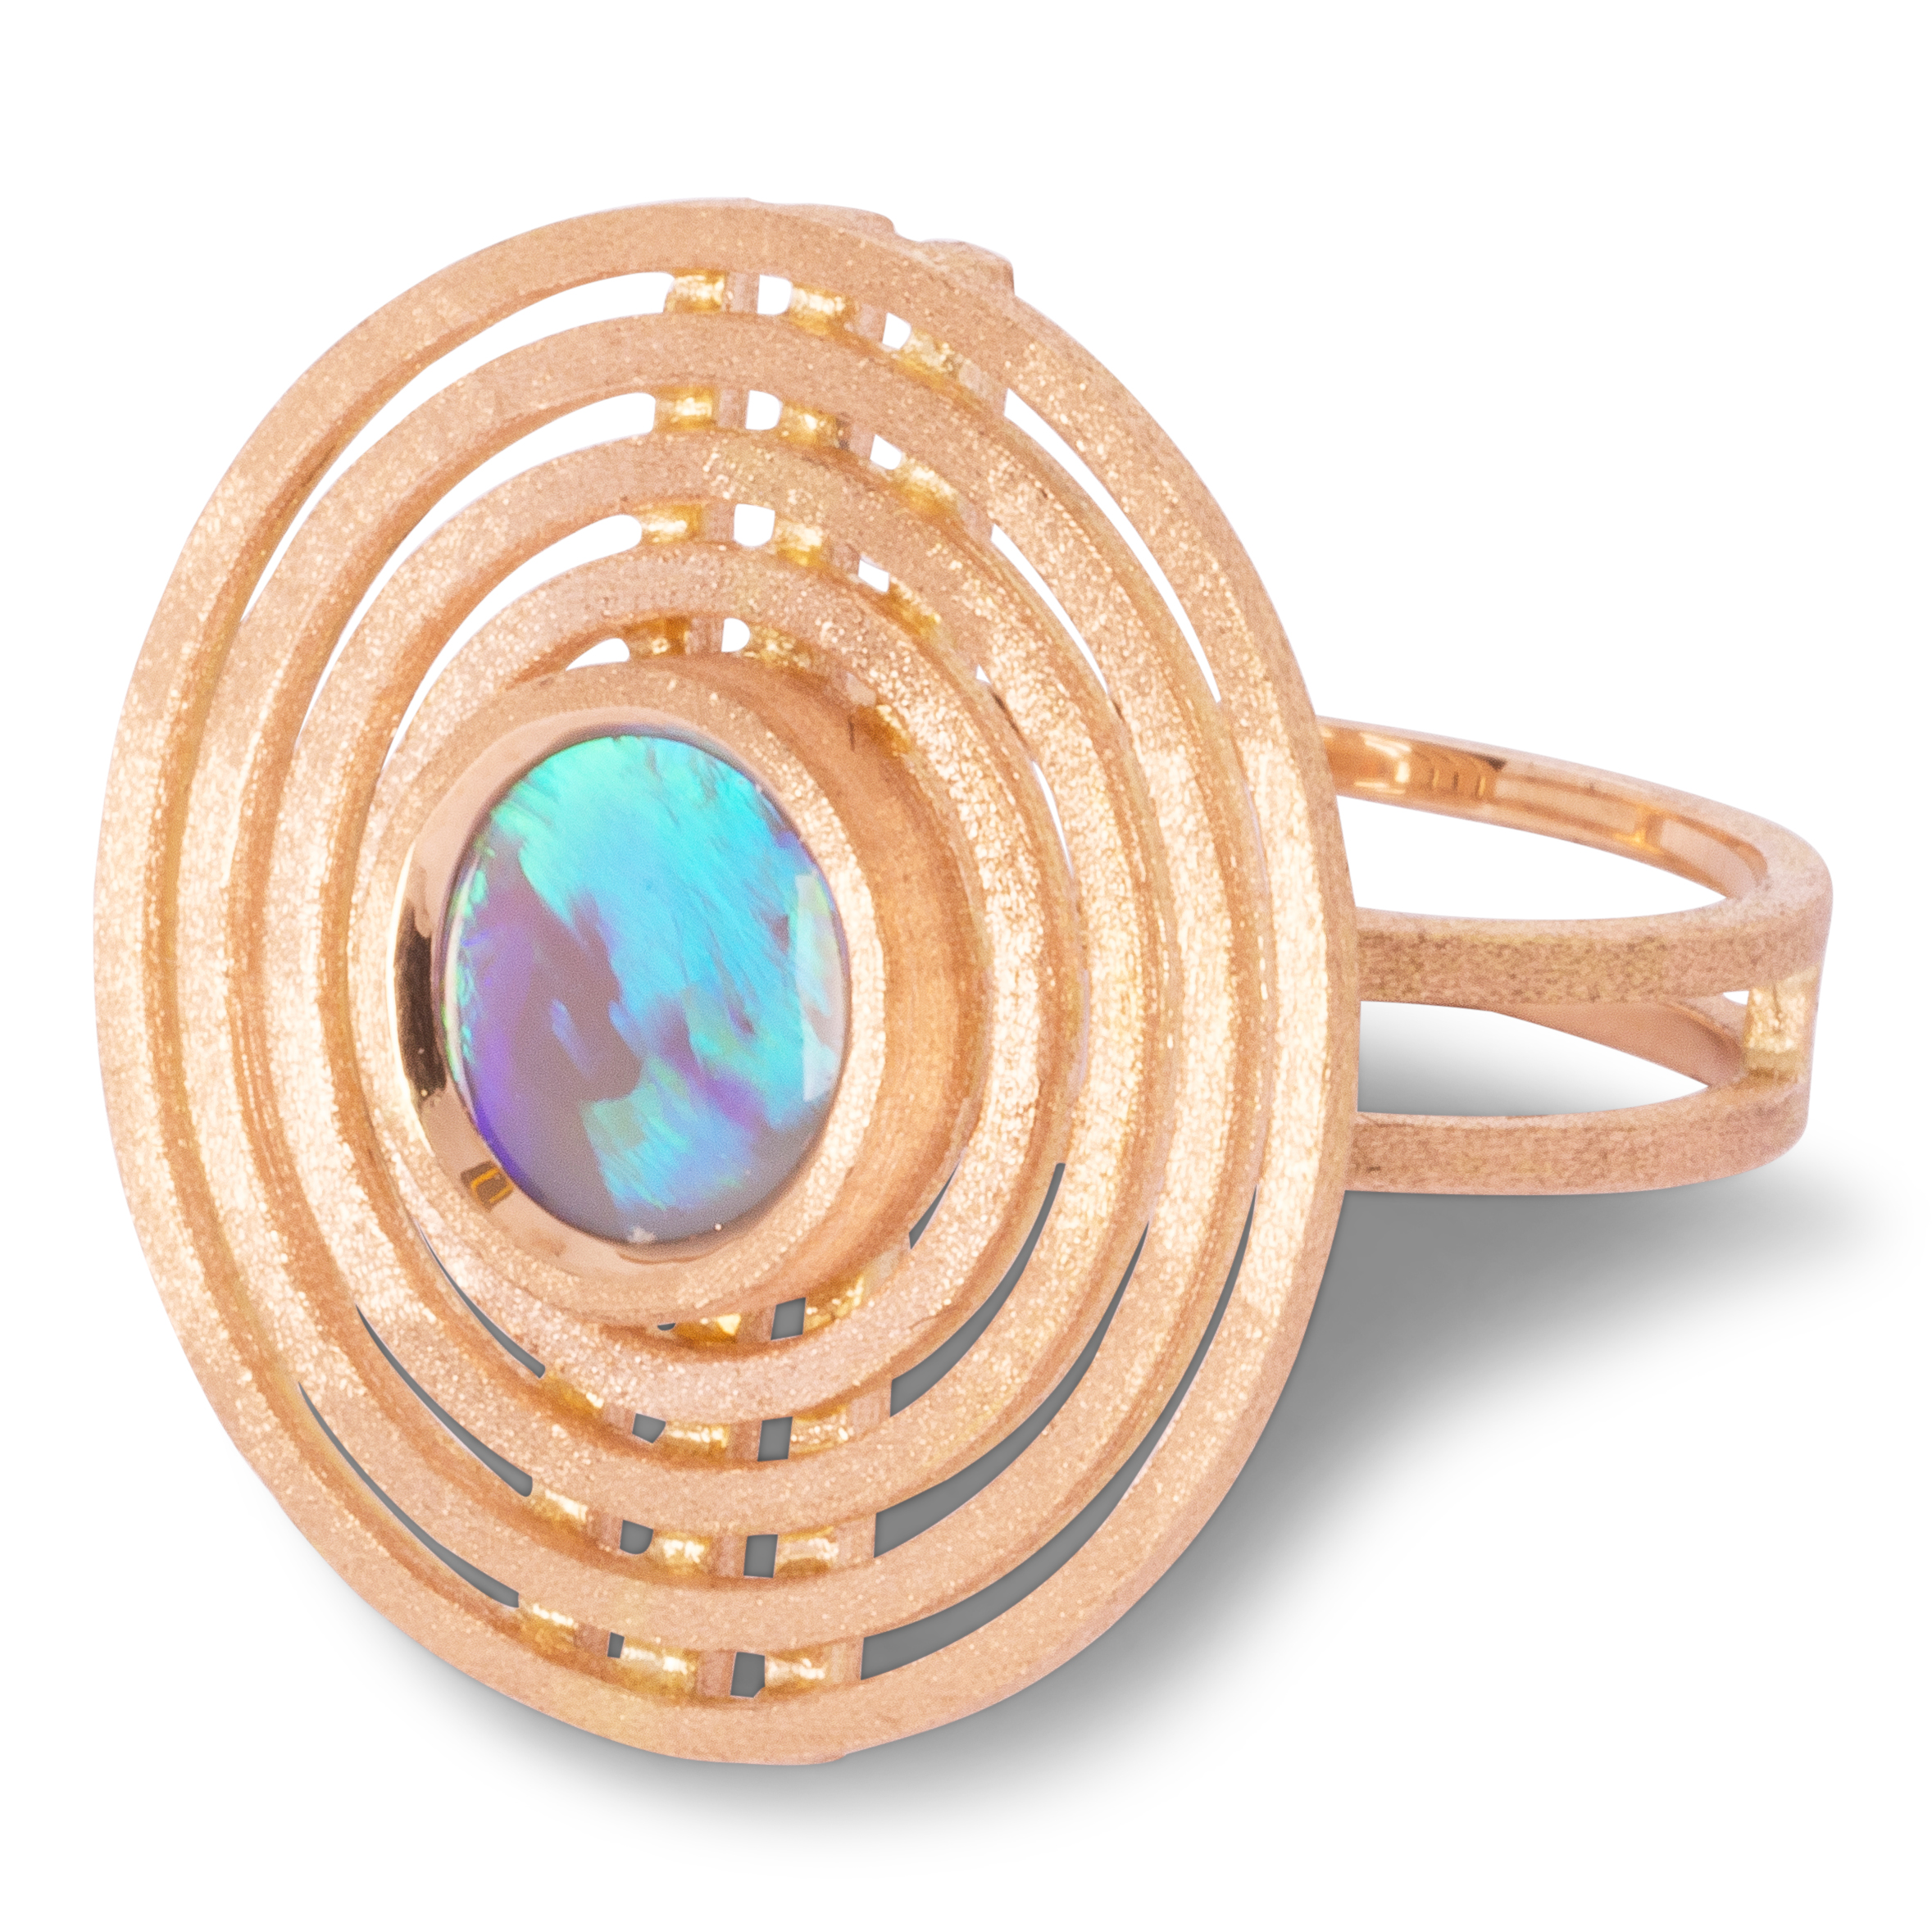 Shimell & Madden 18ct Rose Gold ring